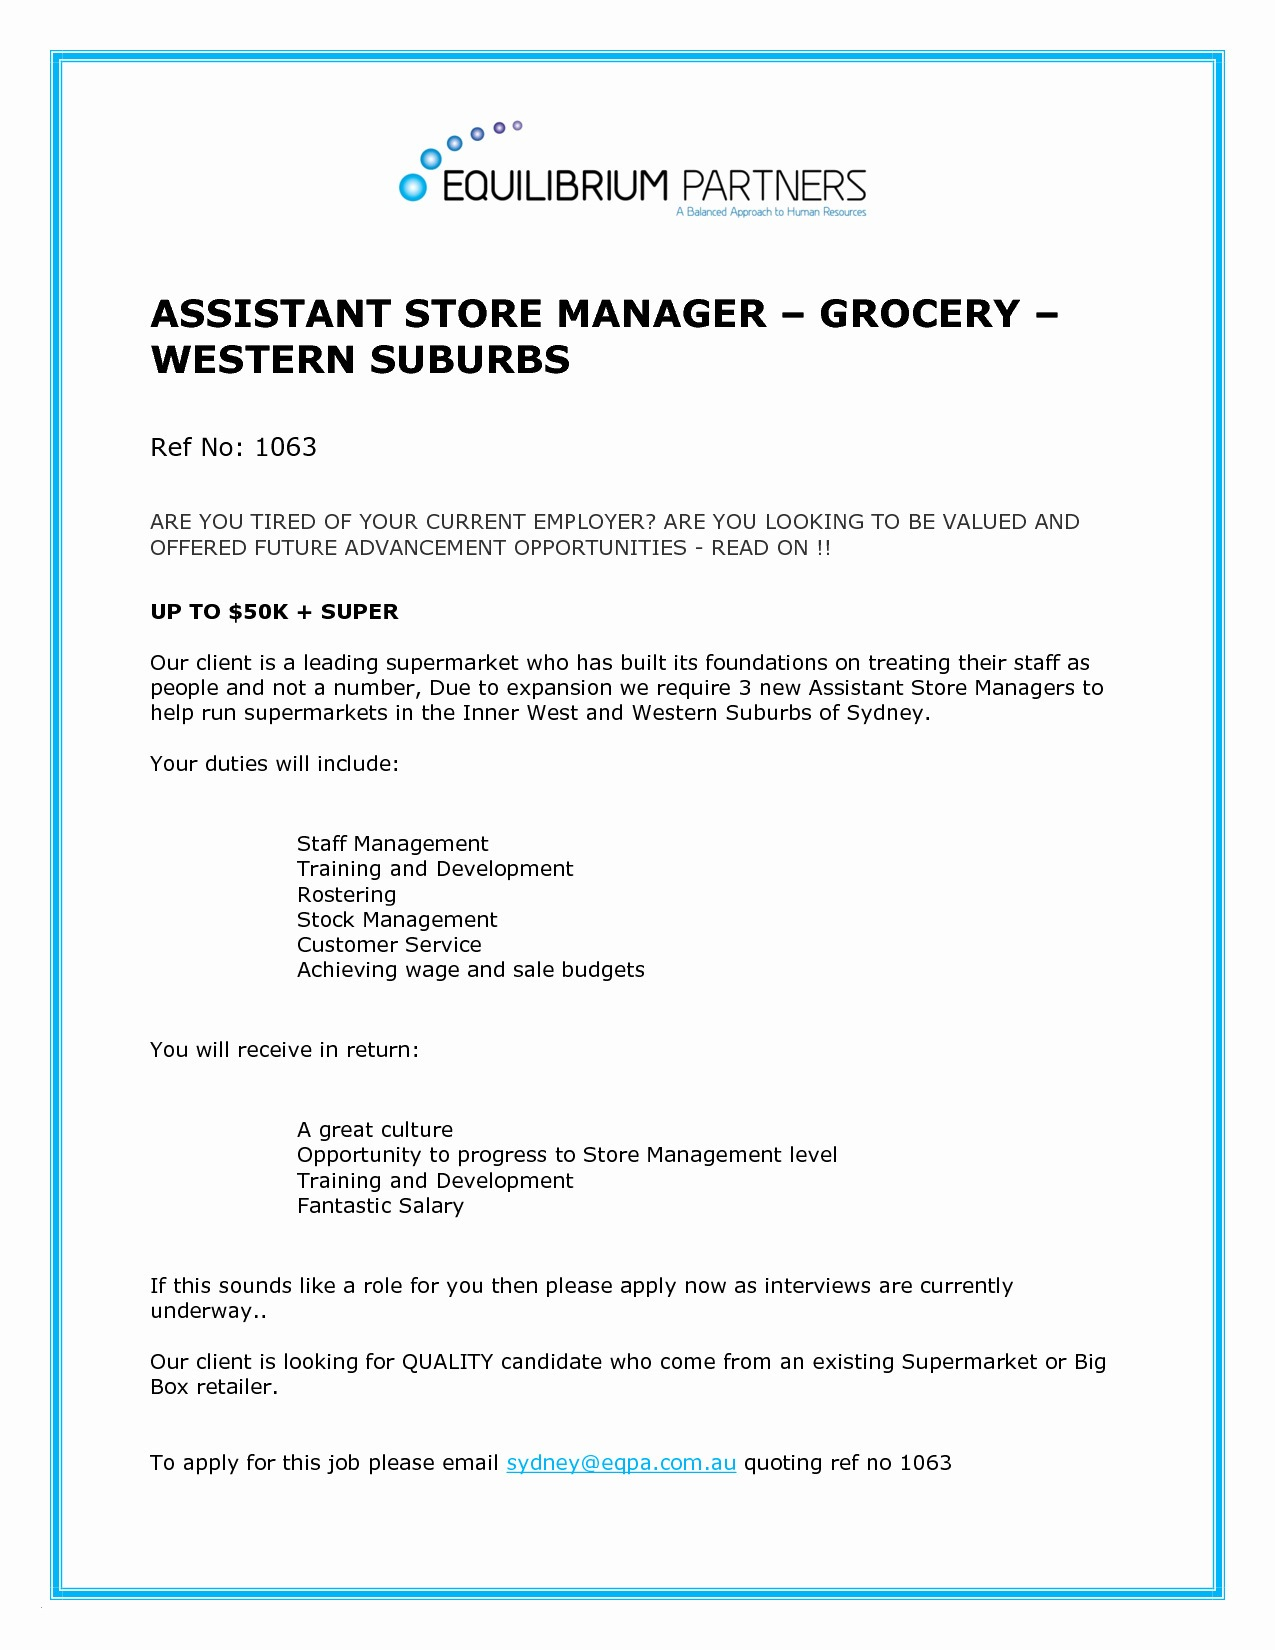 Resume for Retail Store - Retail Store Manager Resume Example Fresh Retail Manager Resume